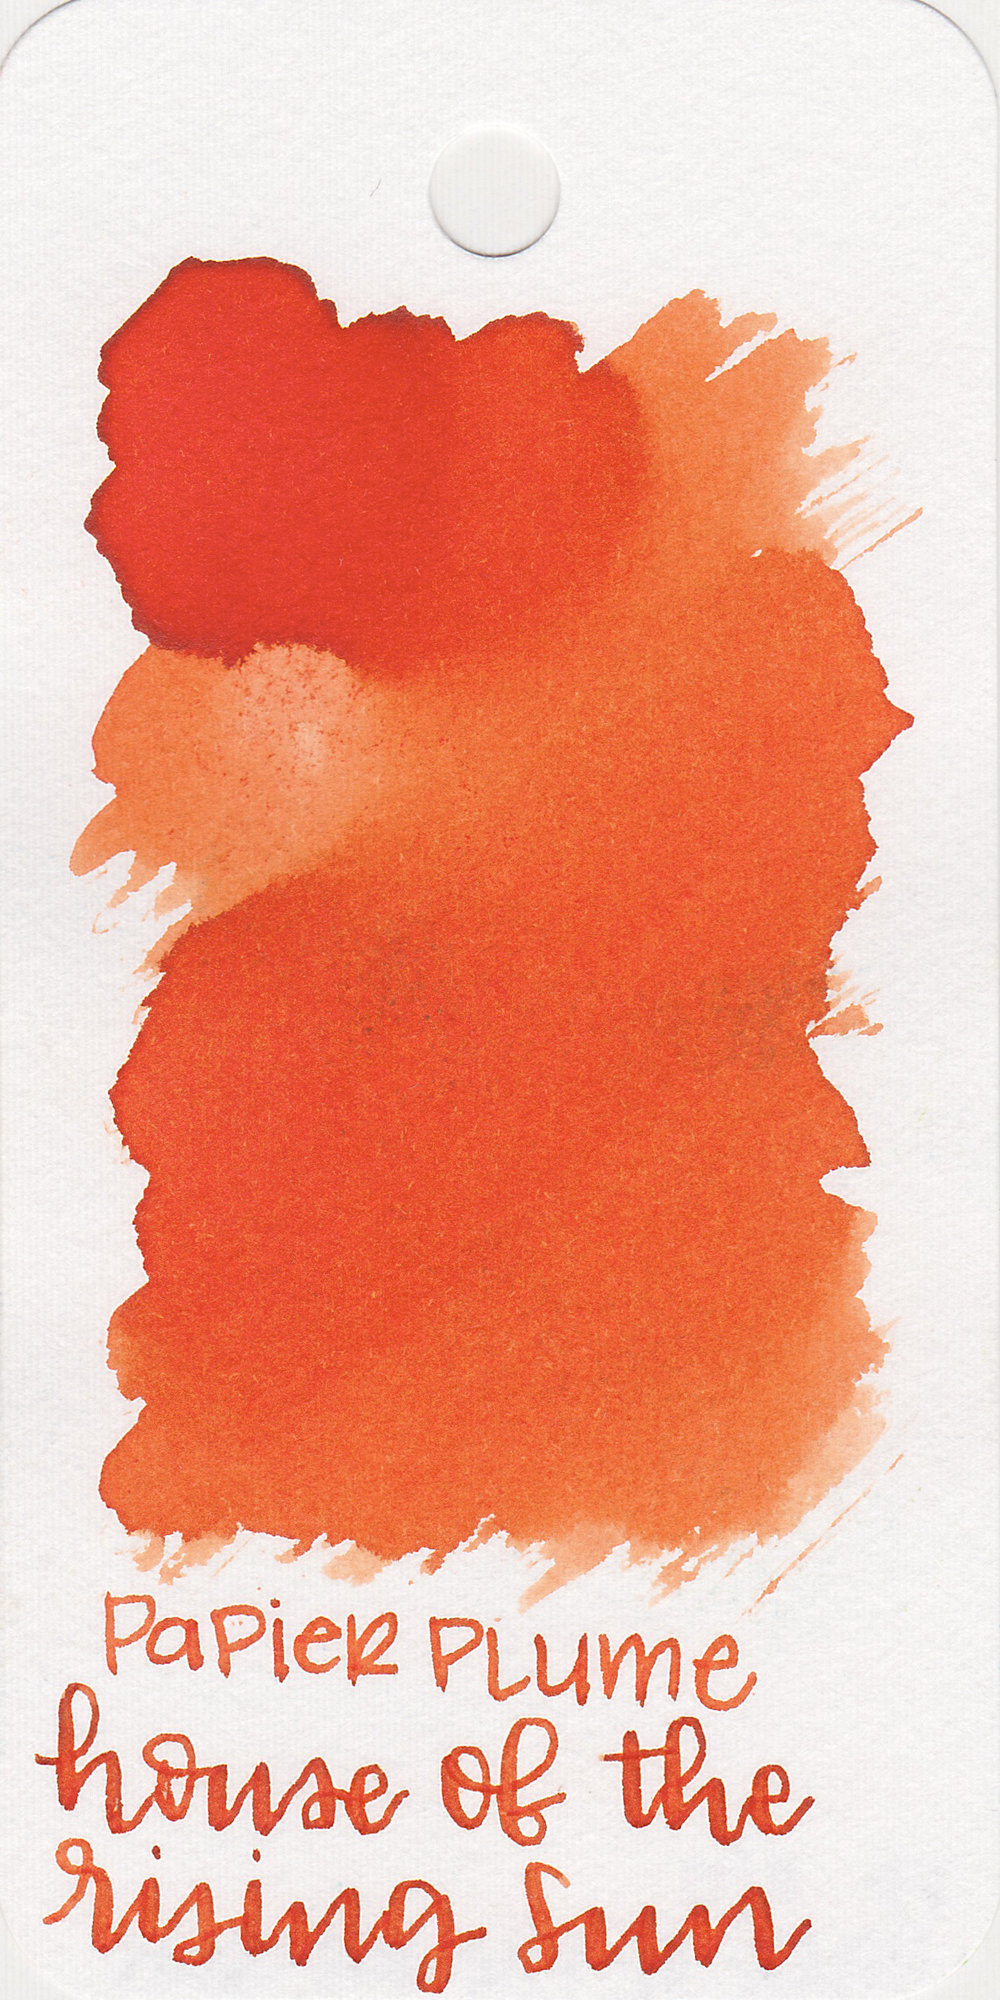 The color: - Rising Sun is a medium orange, ranging from orange to red-orange.